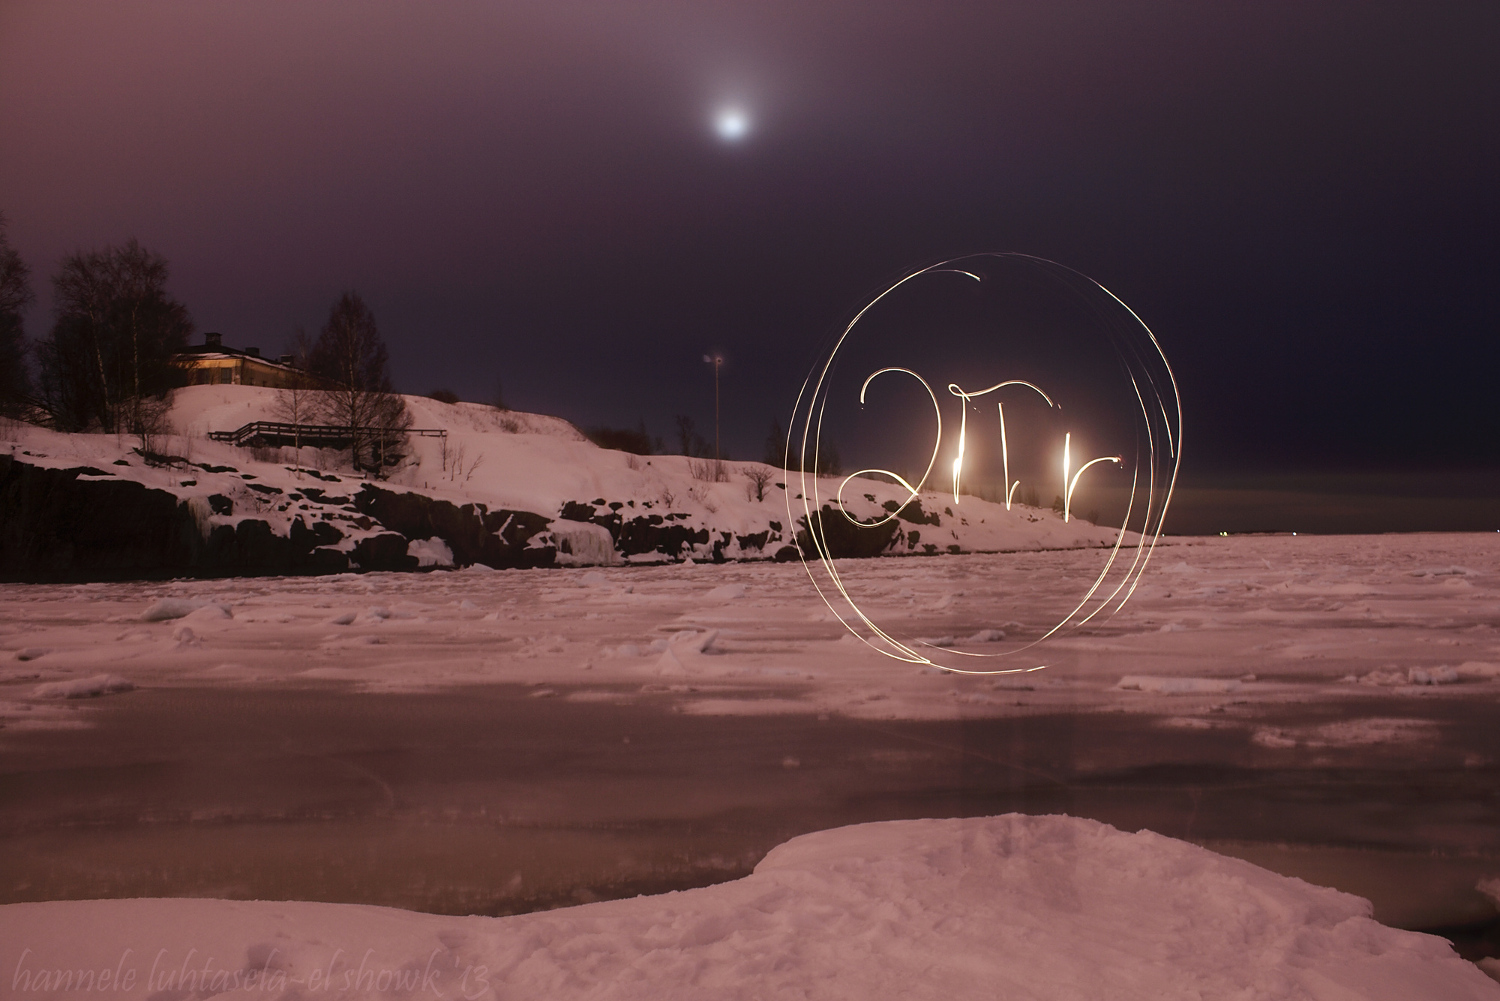 Light painting an equation: the circumference of a circle